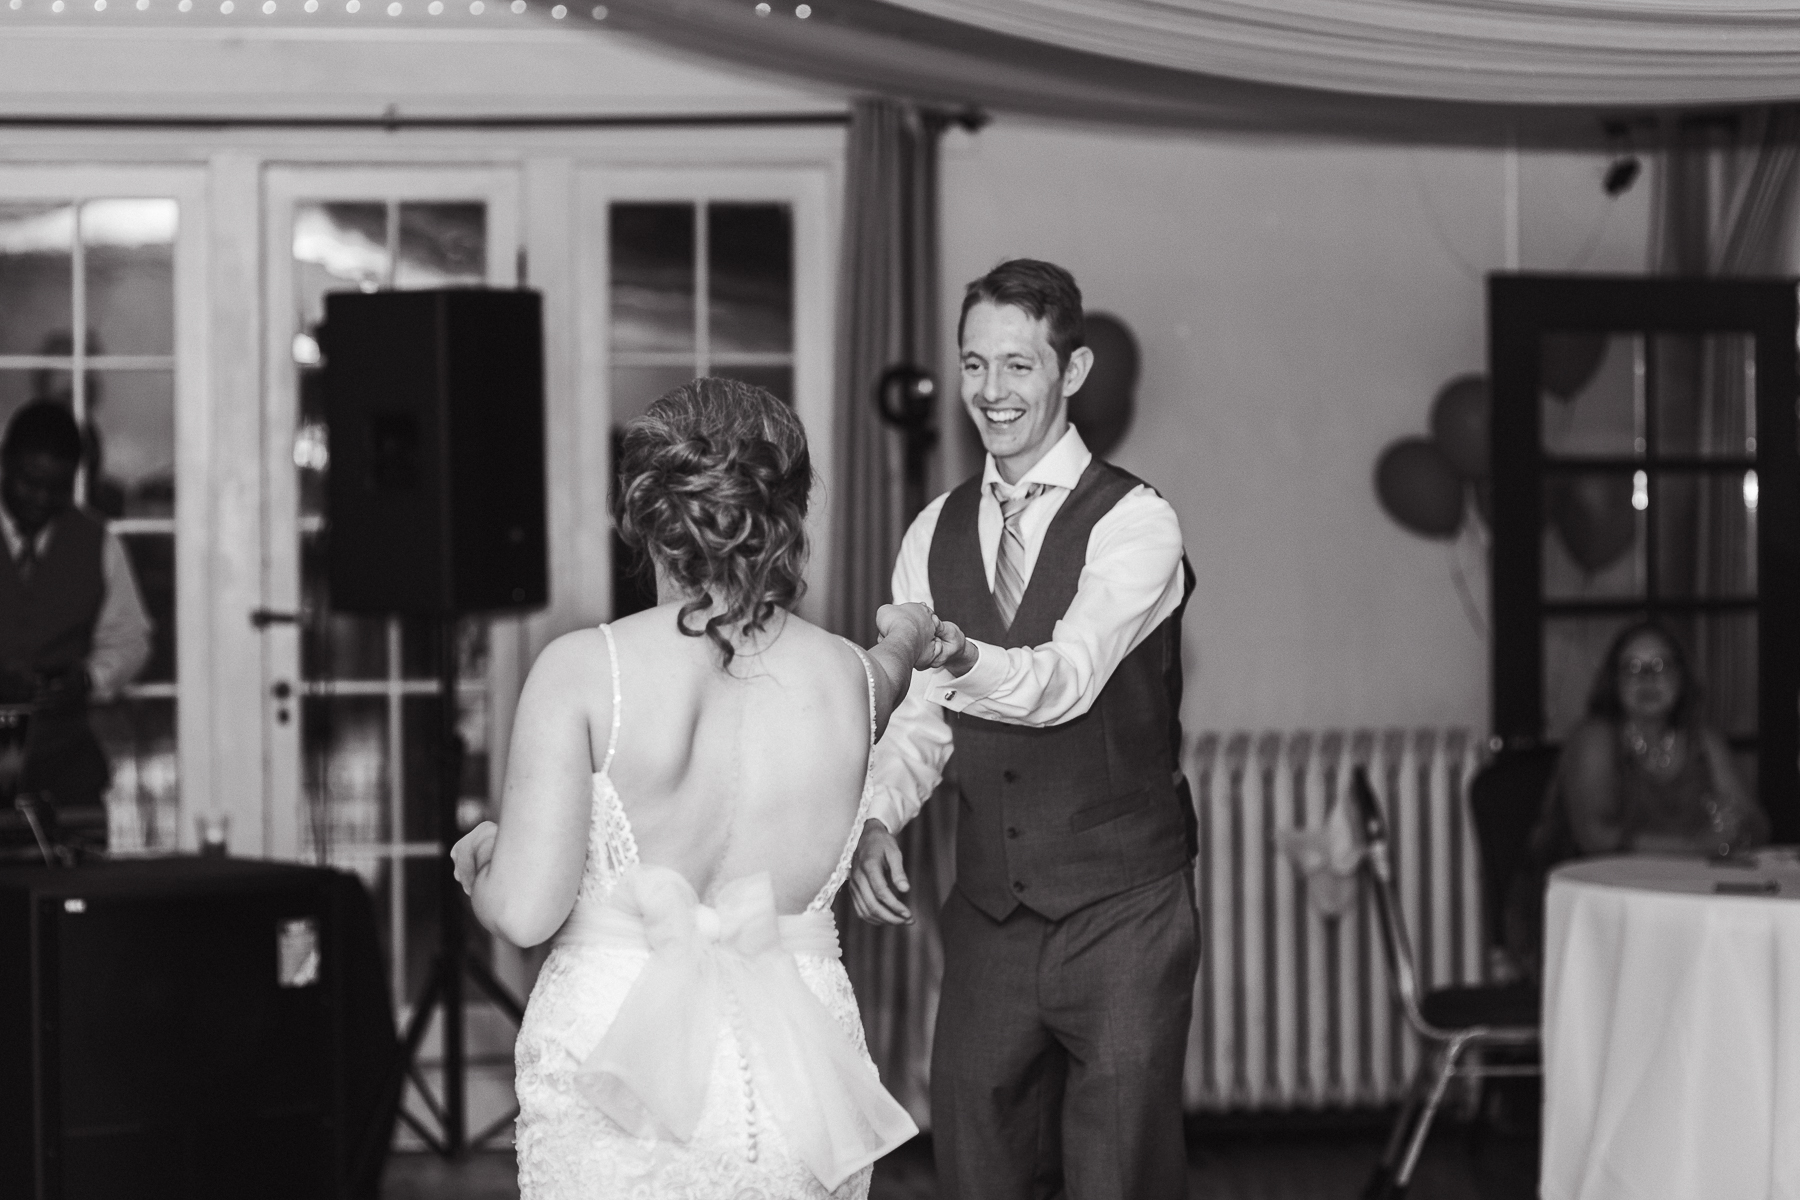 Bride and Groom's first dance at Wyoming wedding